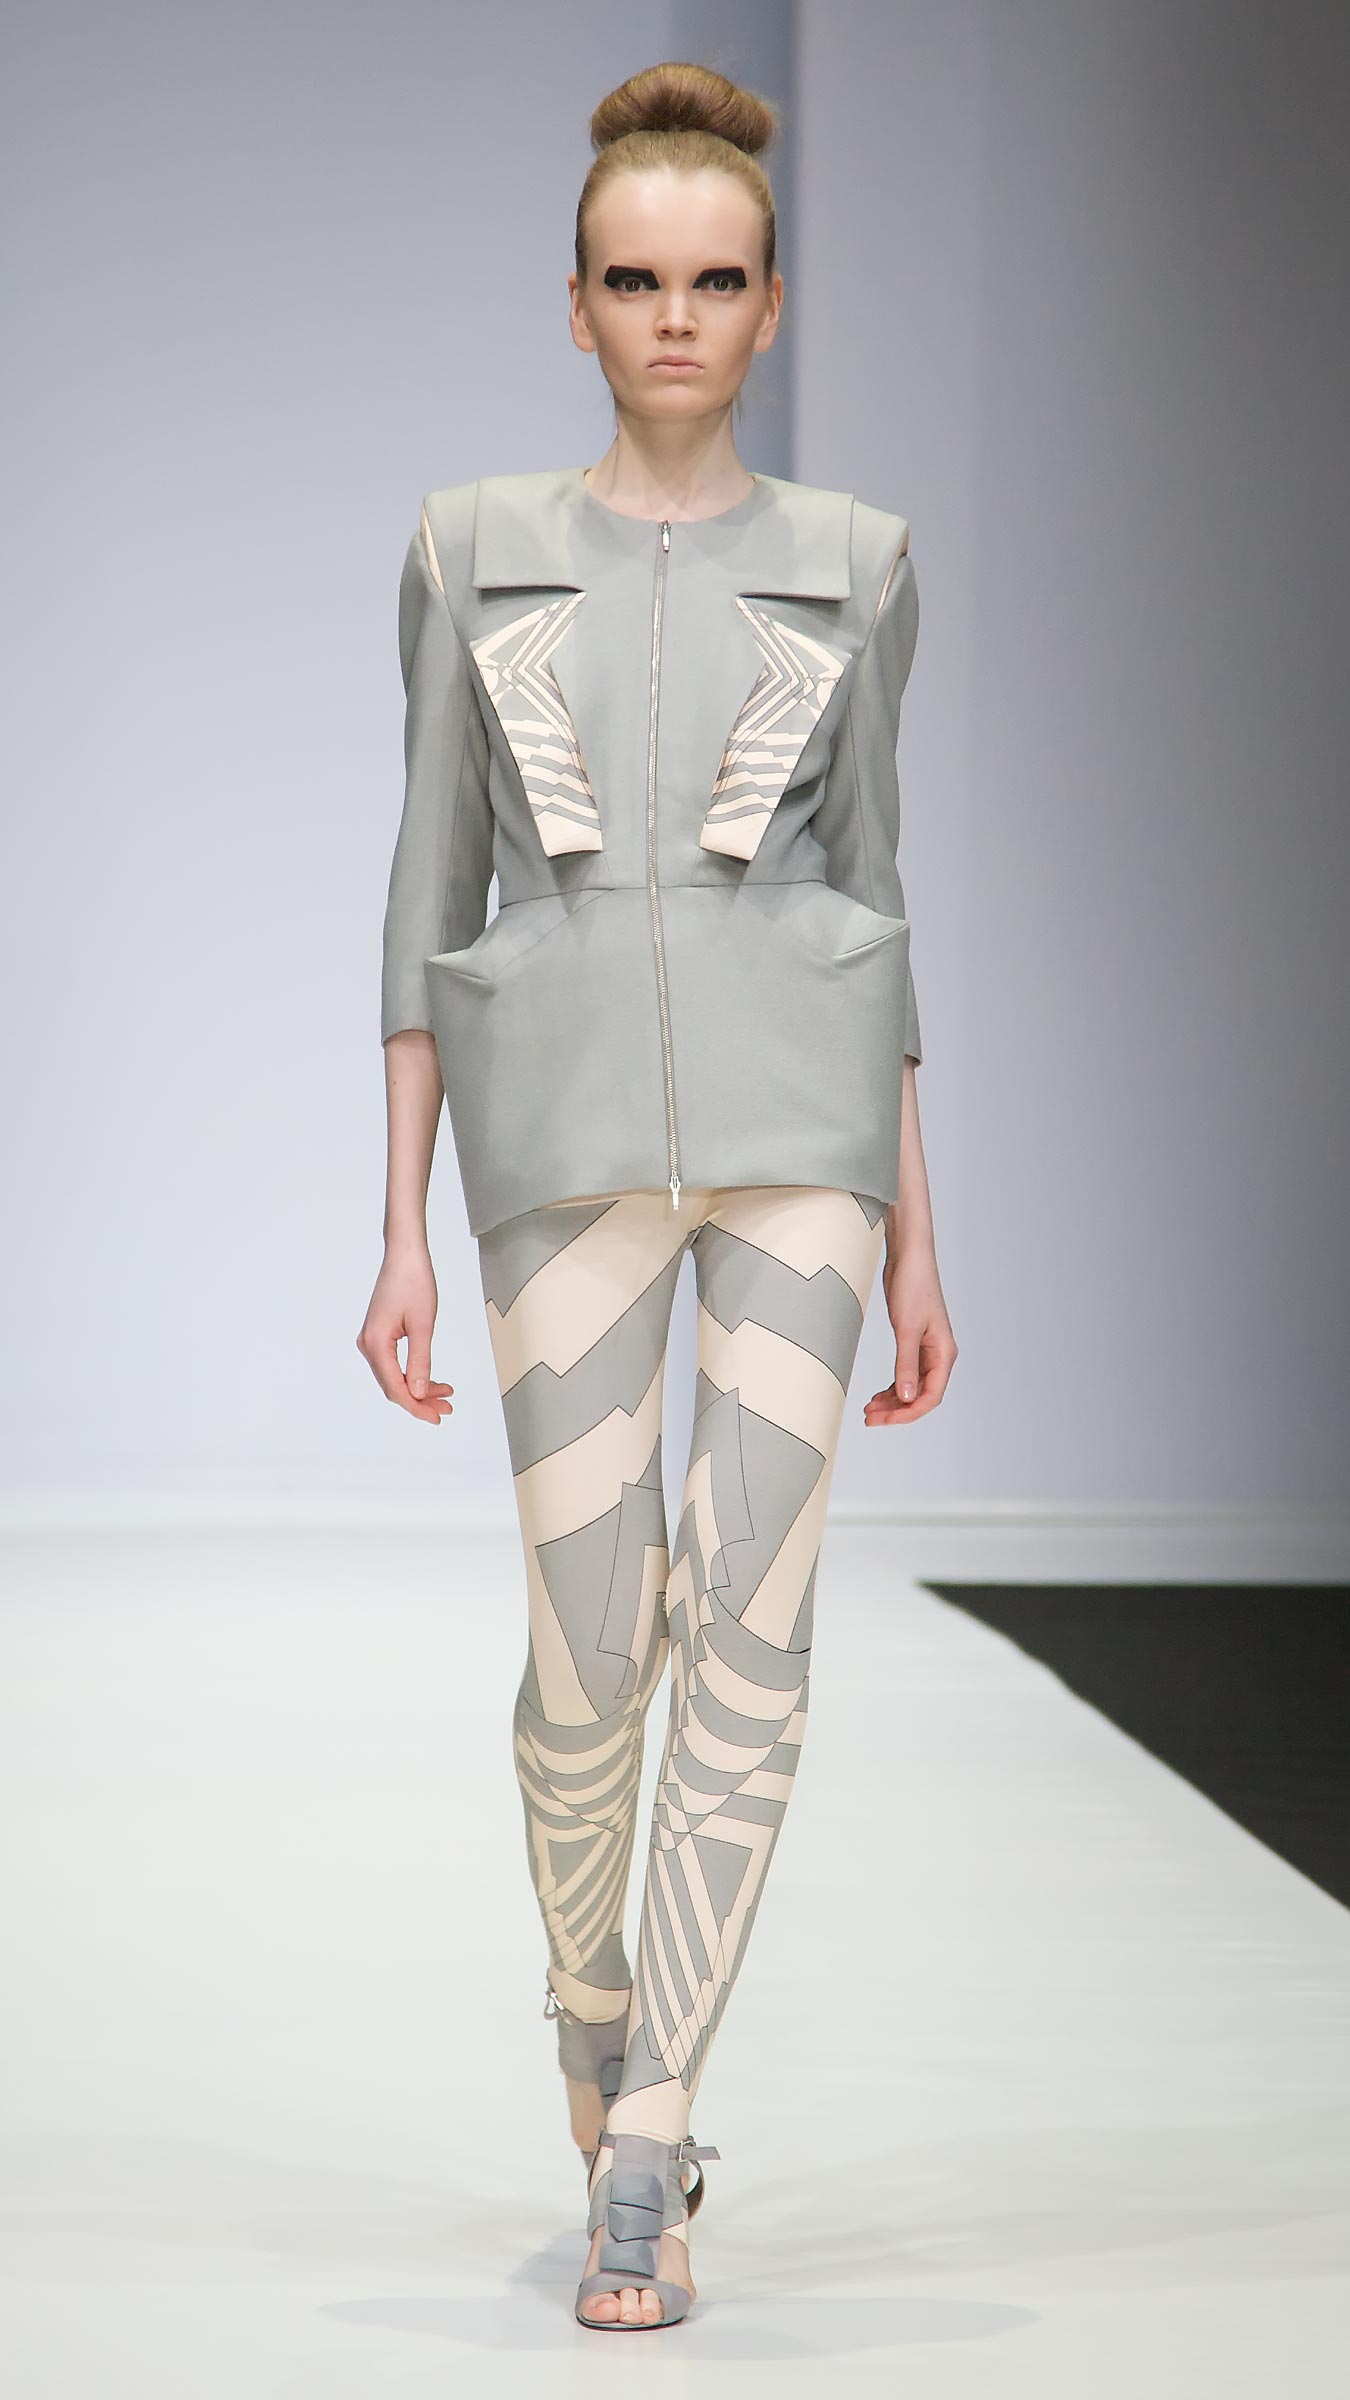 Clare Lopeman AW 2010-11, look 16